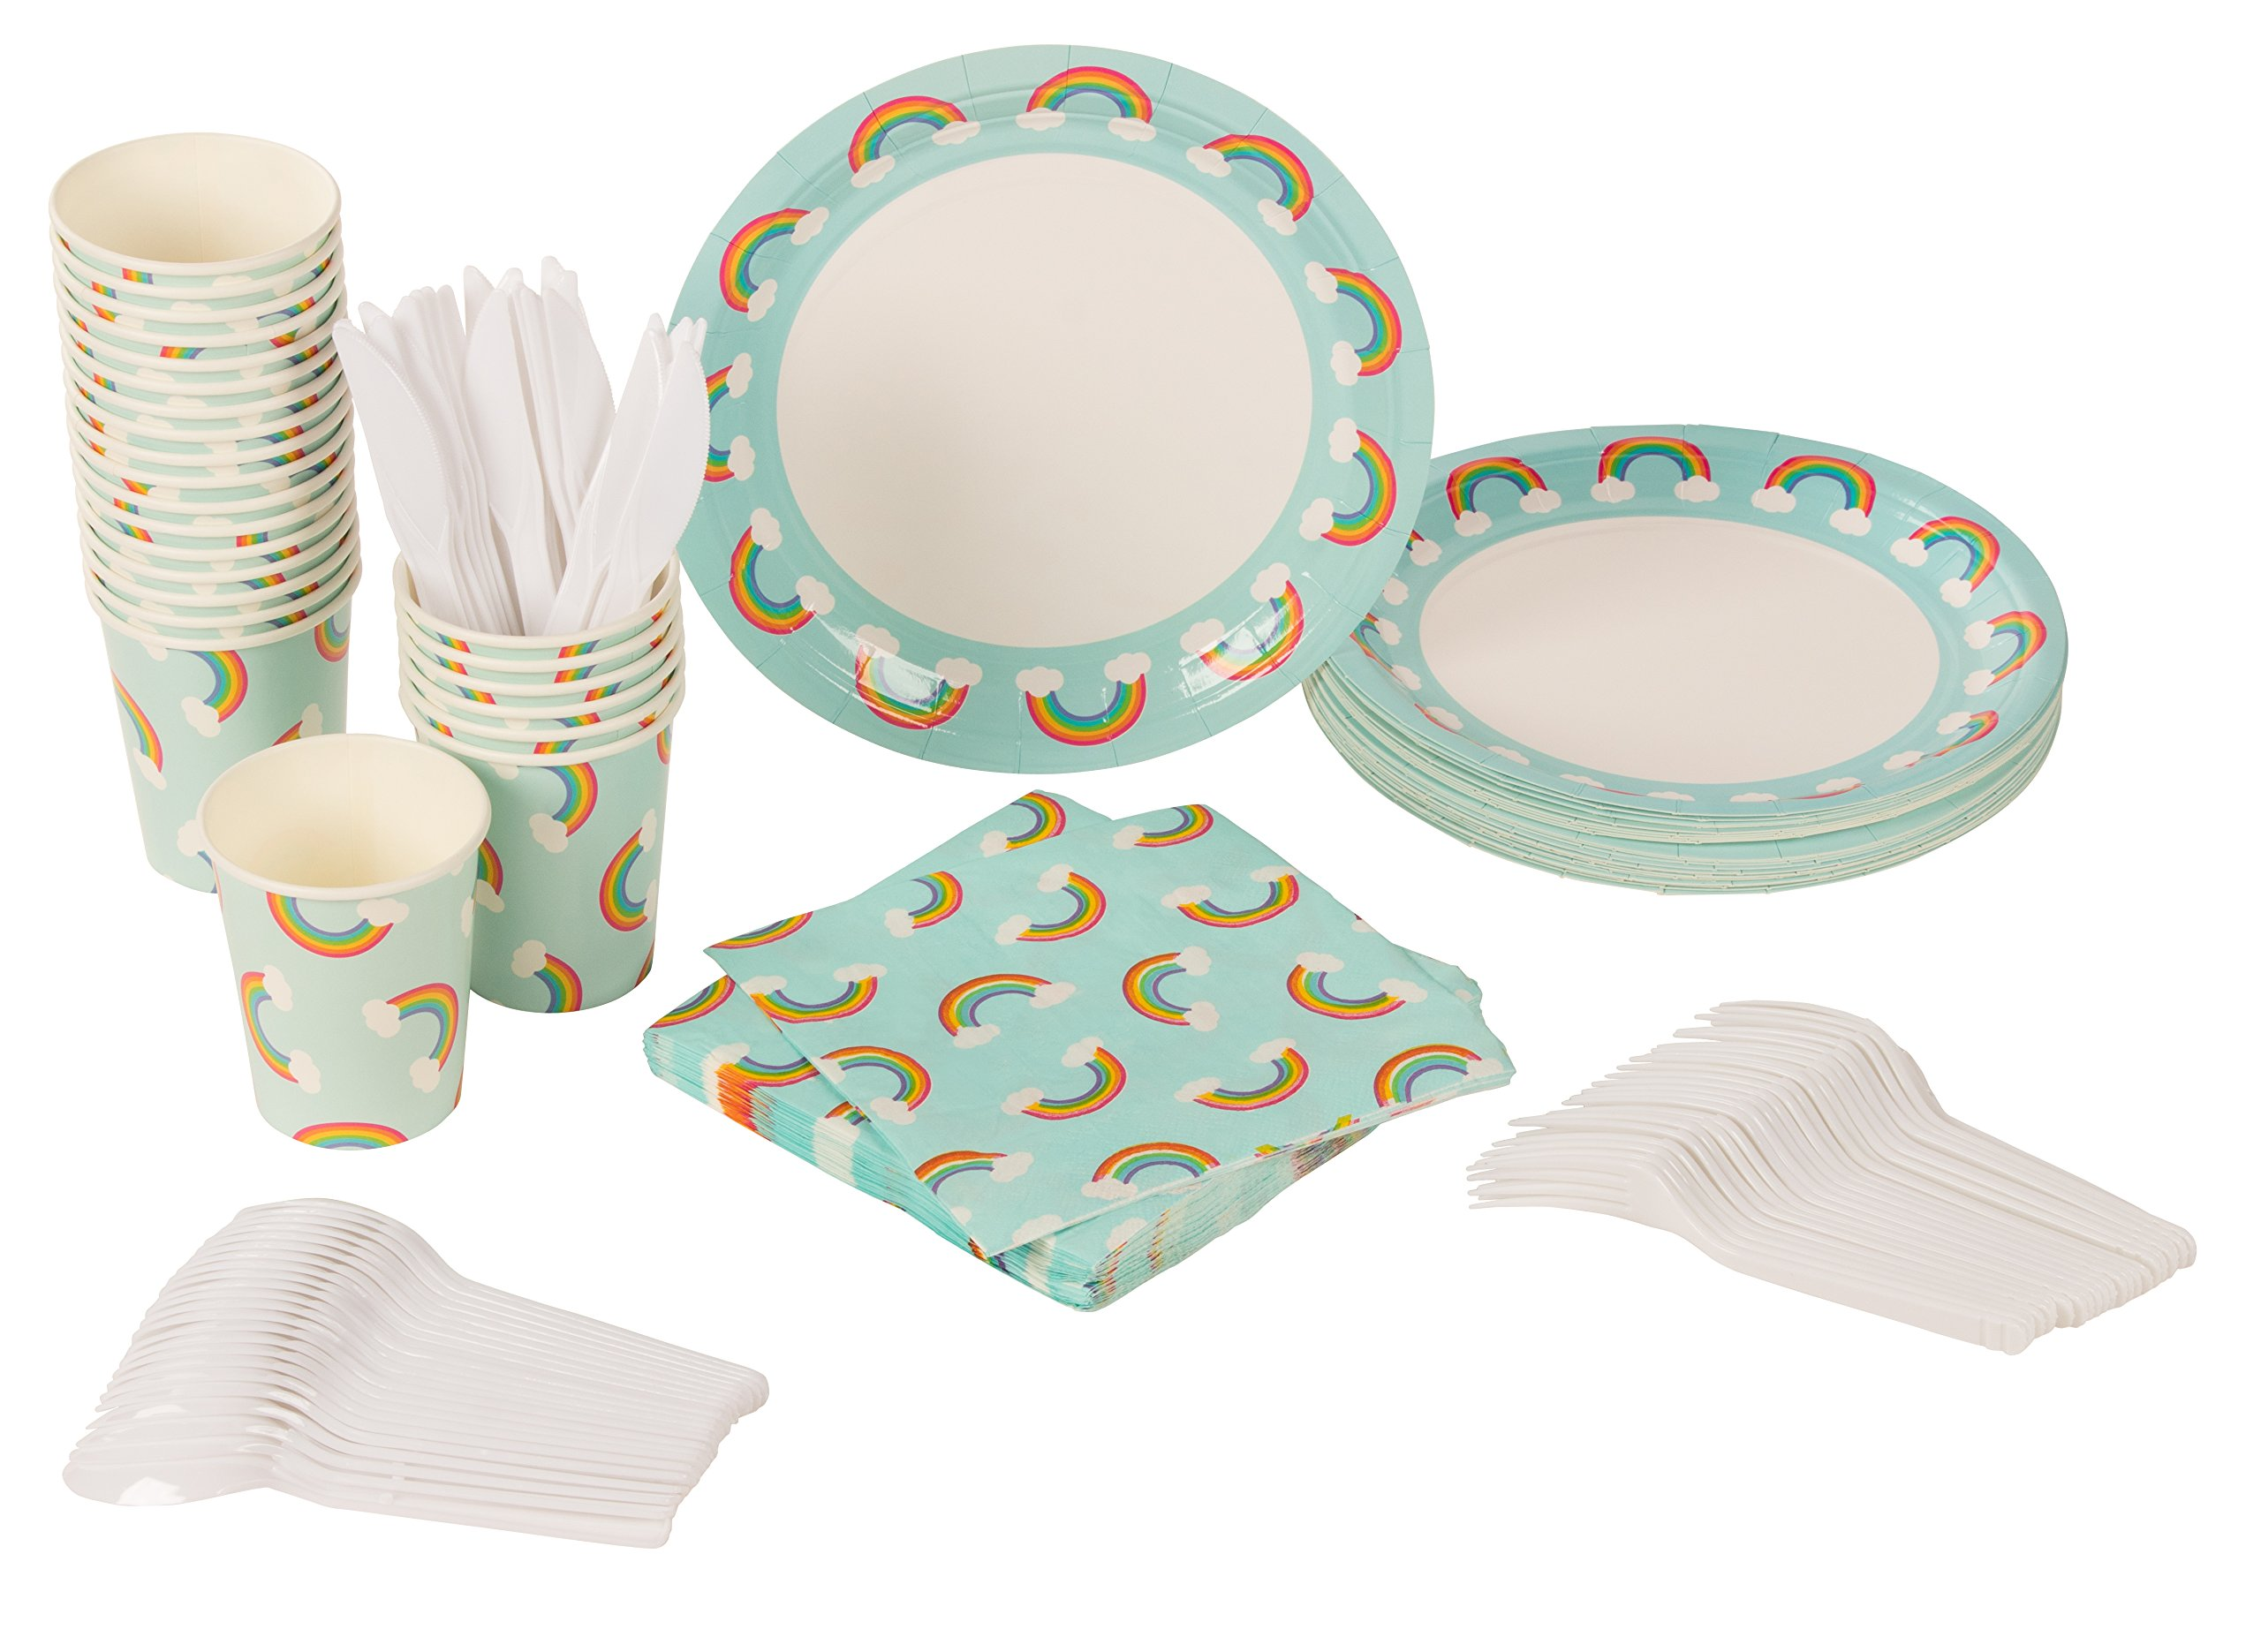 Blue Panda Disposable Dinnerware Set - Serves 24 - Rainbow Party Supplies for Kids Birthdays, Baby Showers - Includes Plastic Knives, Spoons, Forks, Paper Plates, Napkins, Cups